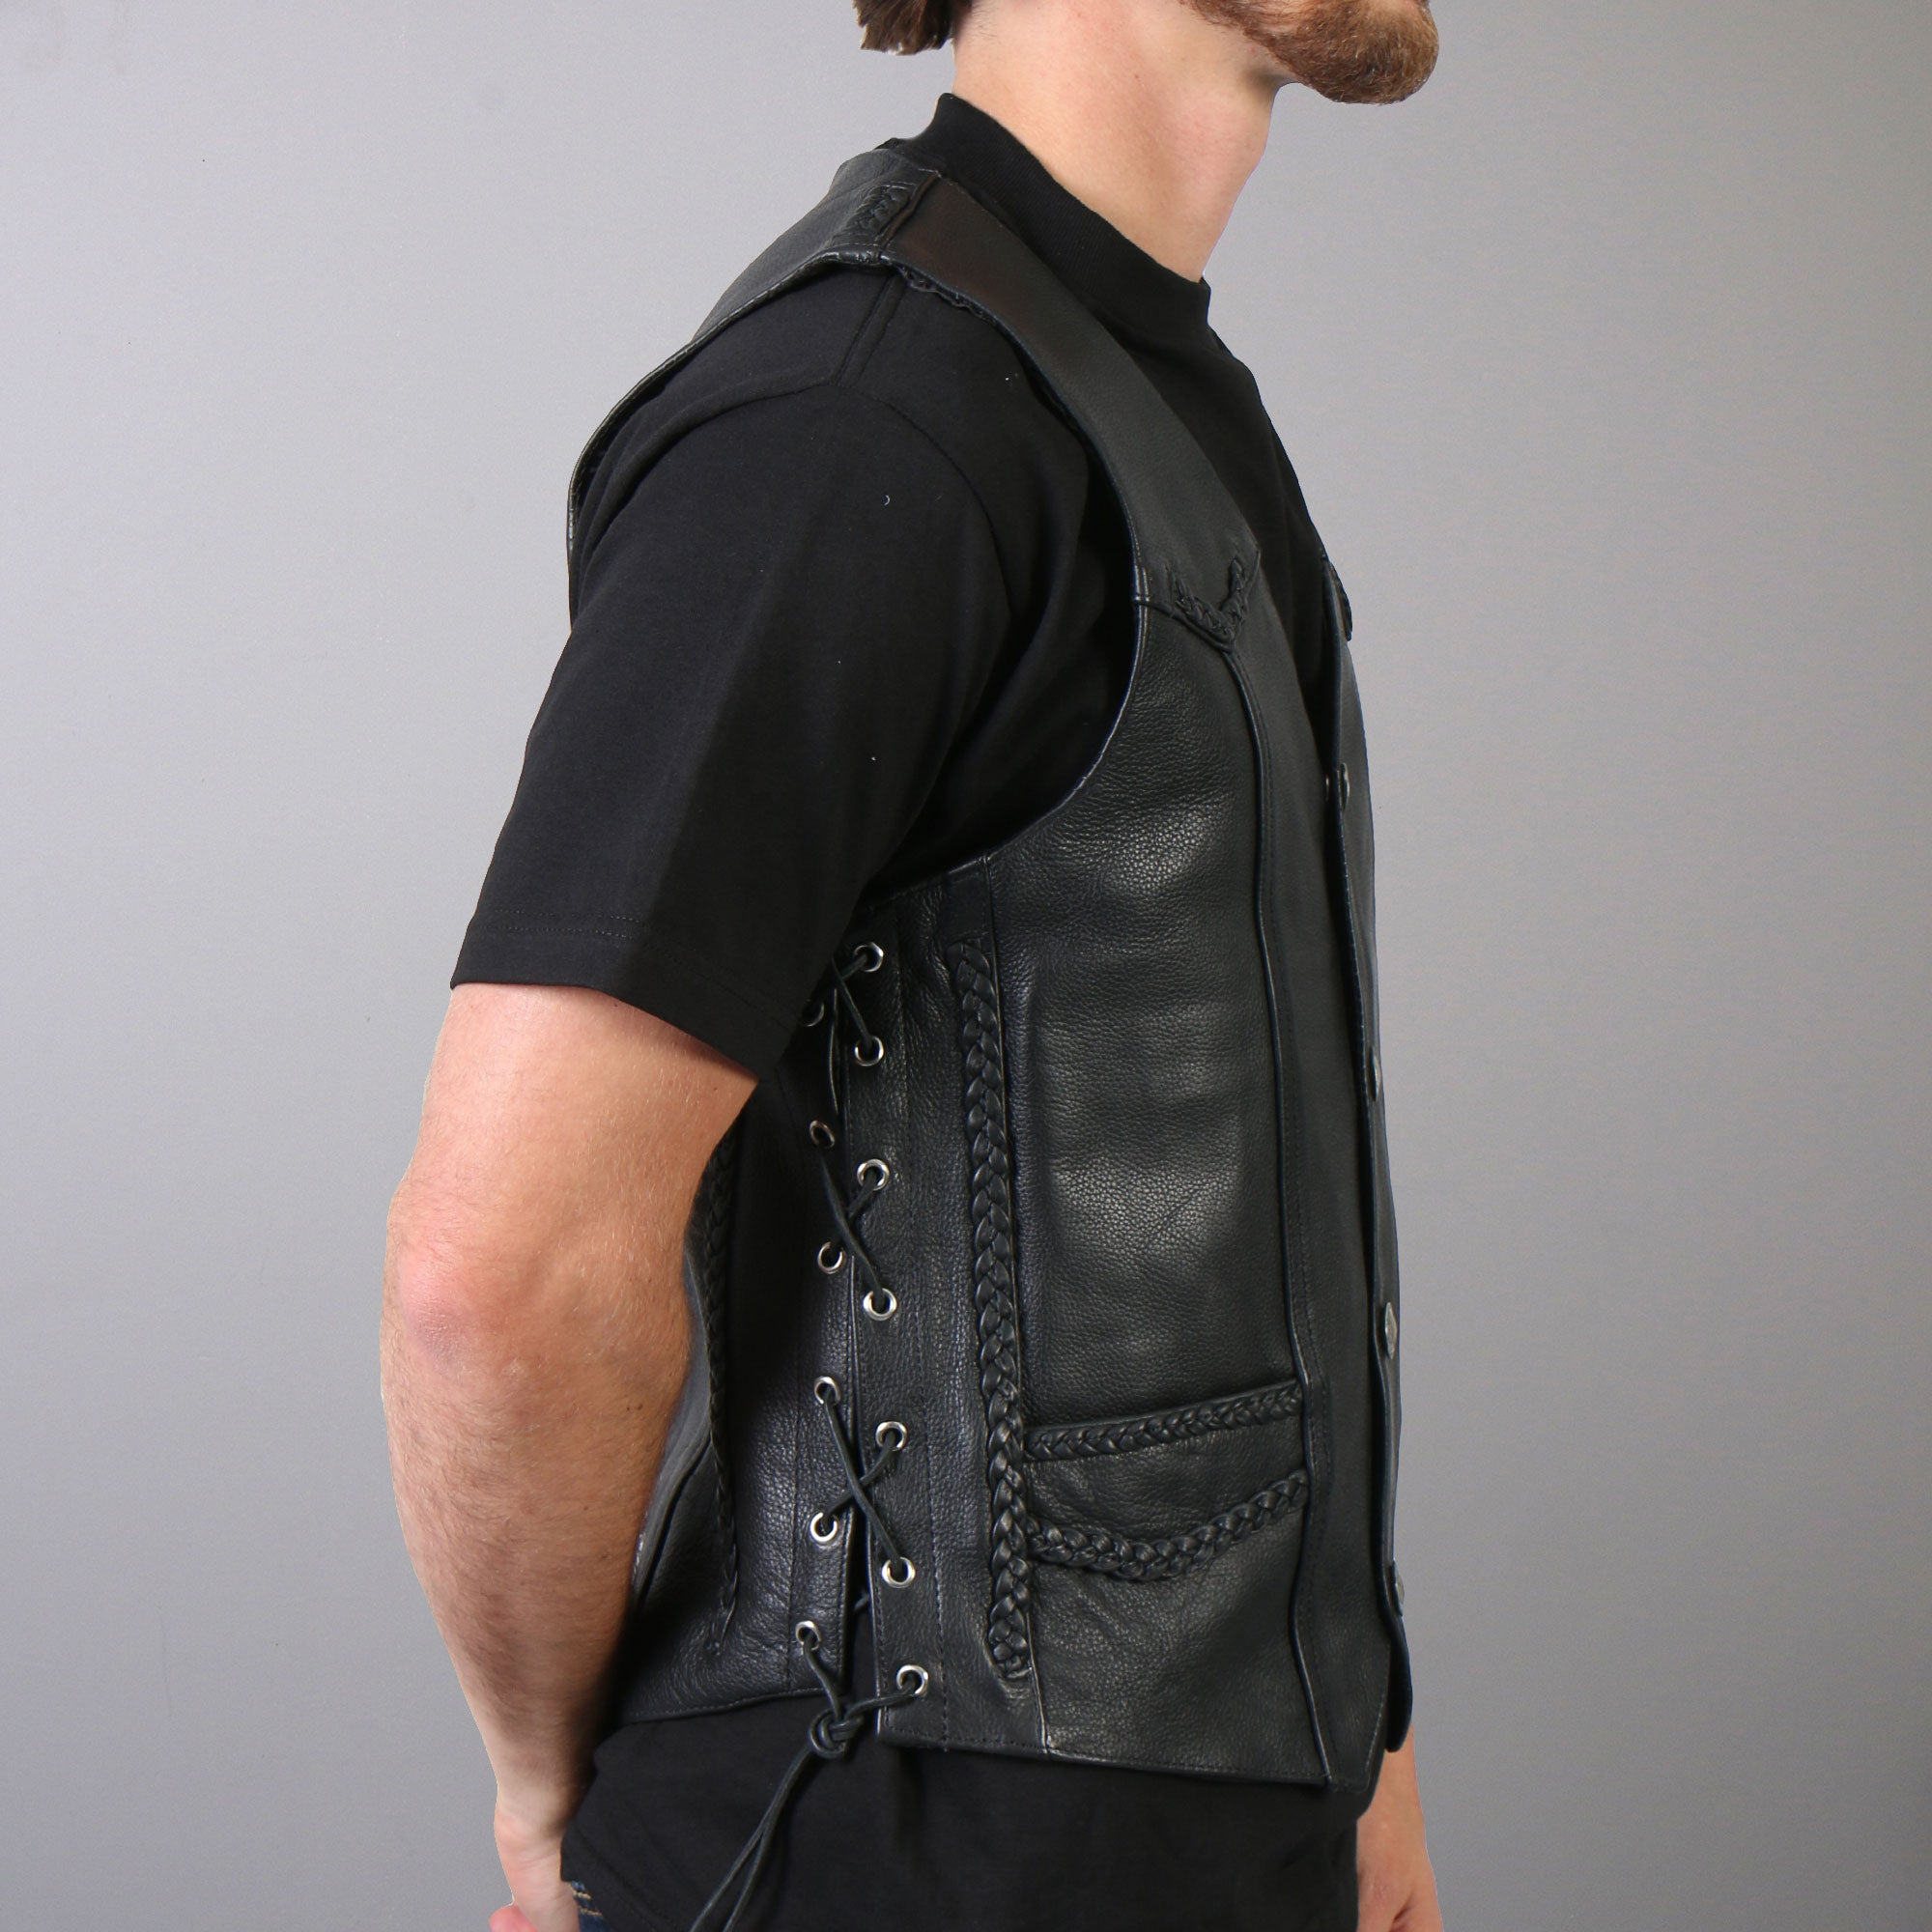 Hot Leathers Men's Buffalo Nickel Snap Leather Vest w/ Braided Detail